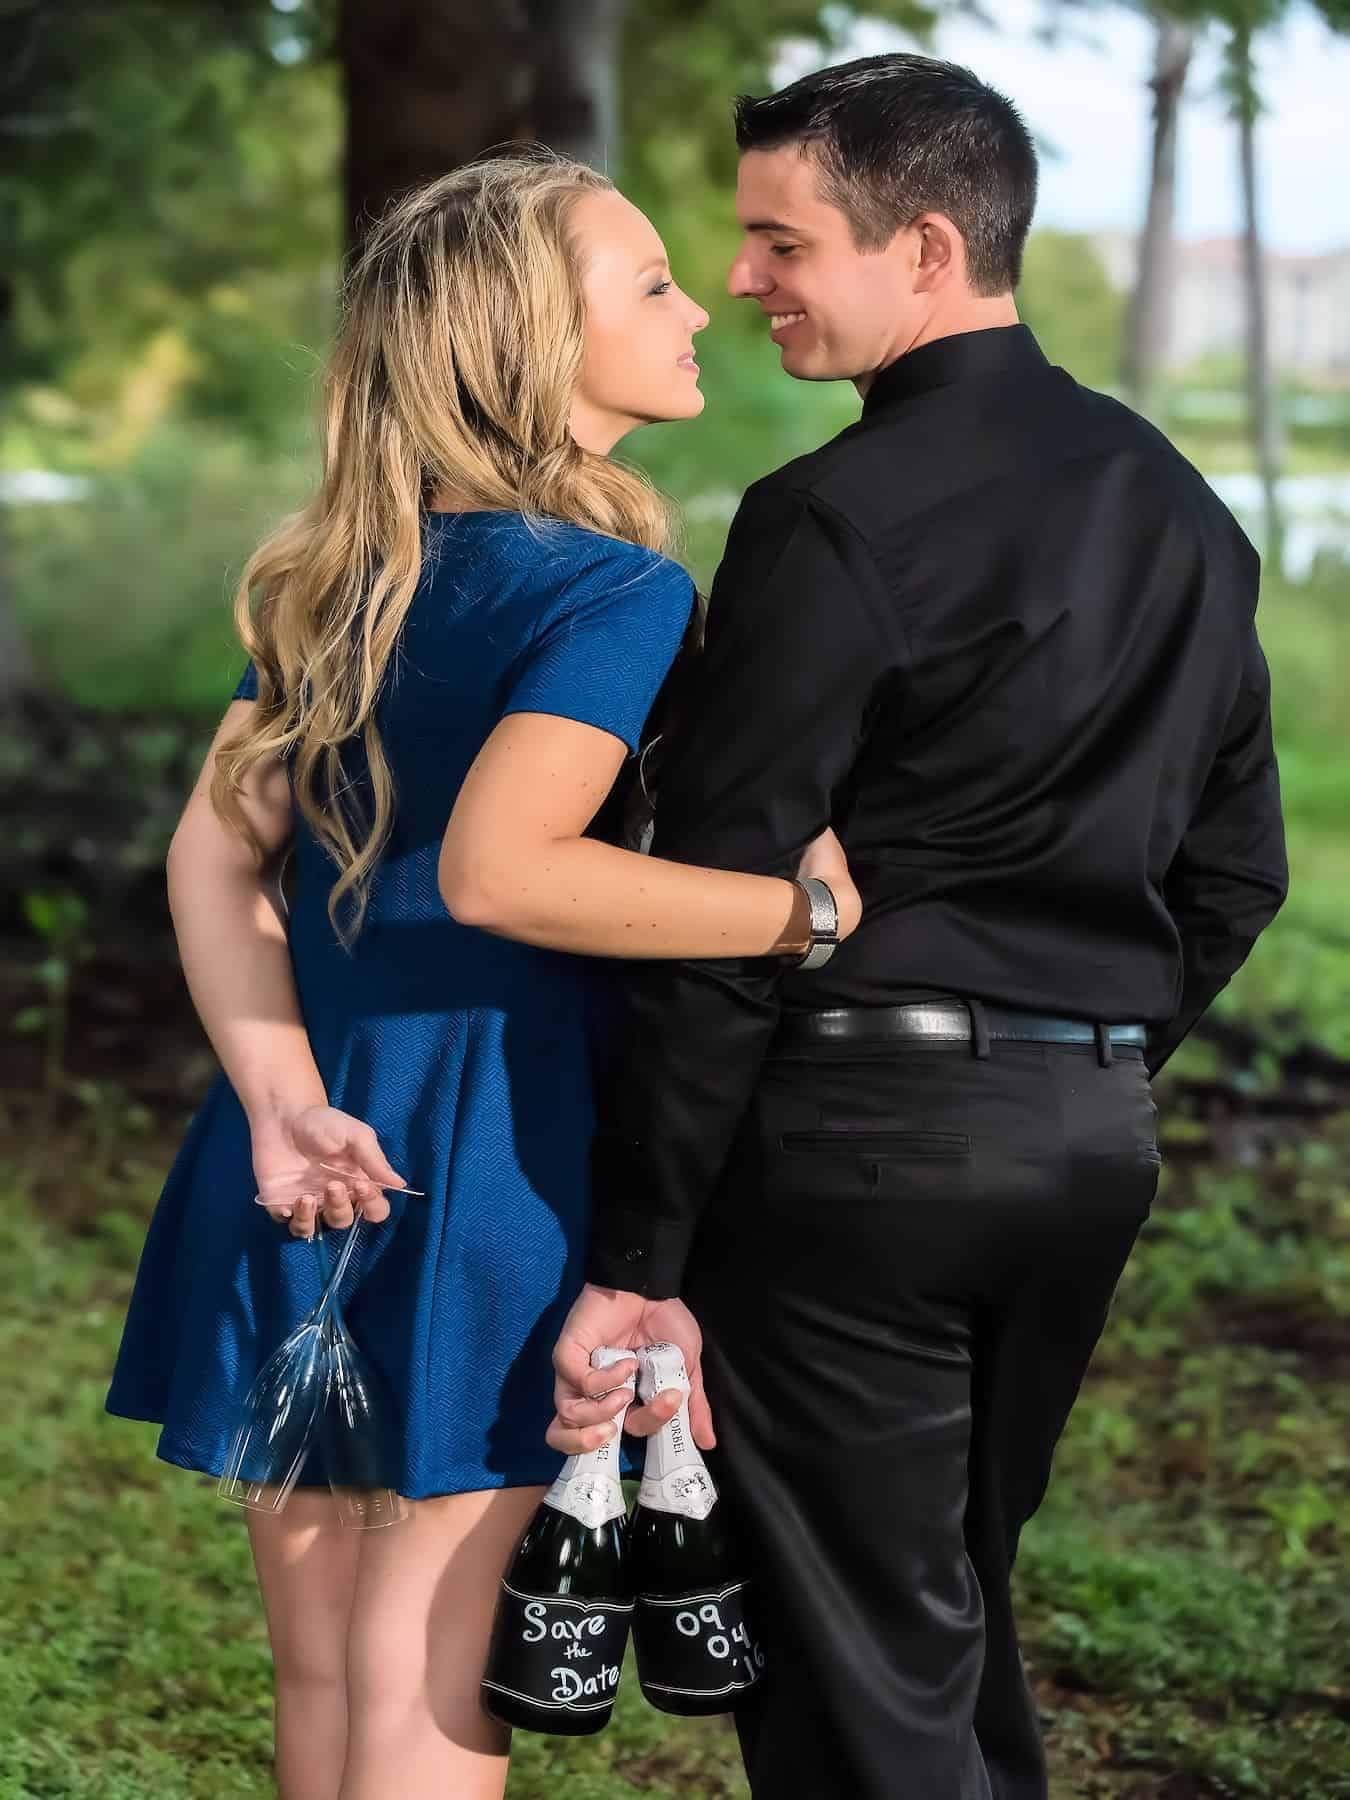 Couple enjoy a champagne toast during engagement photos